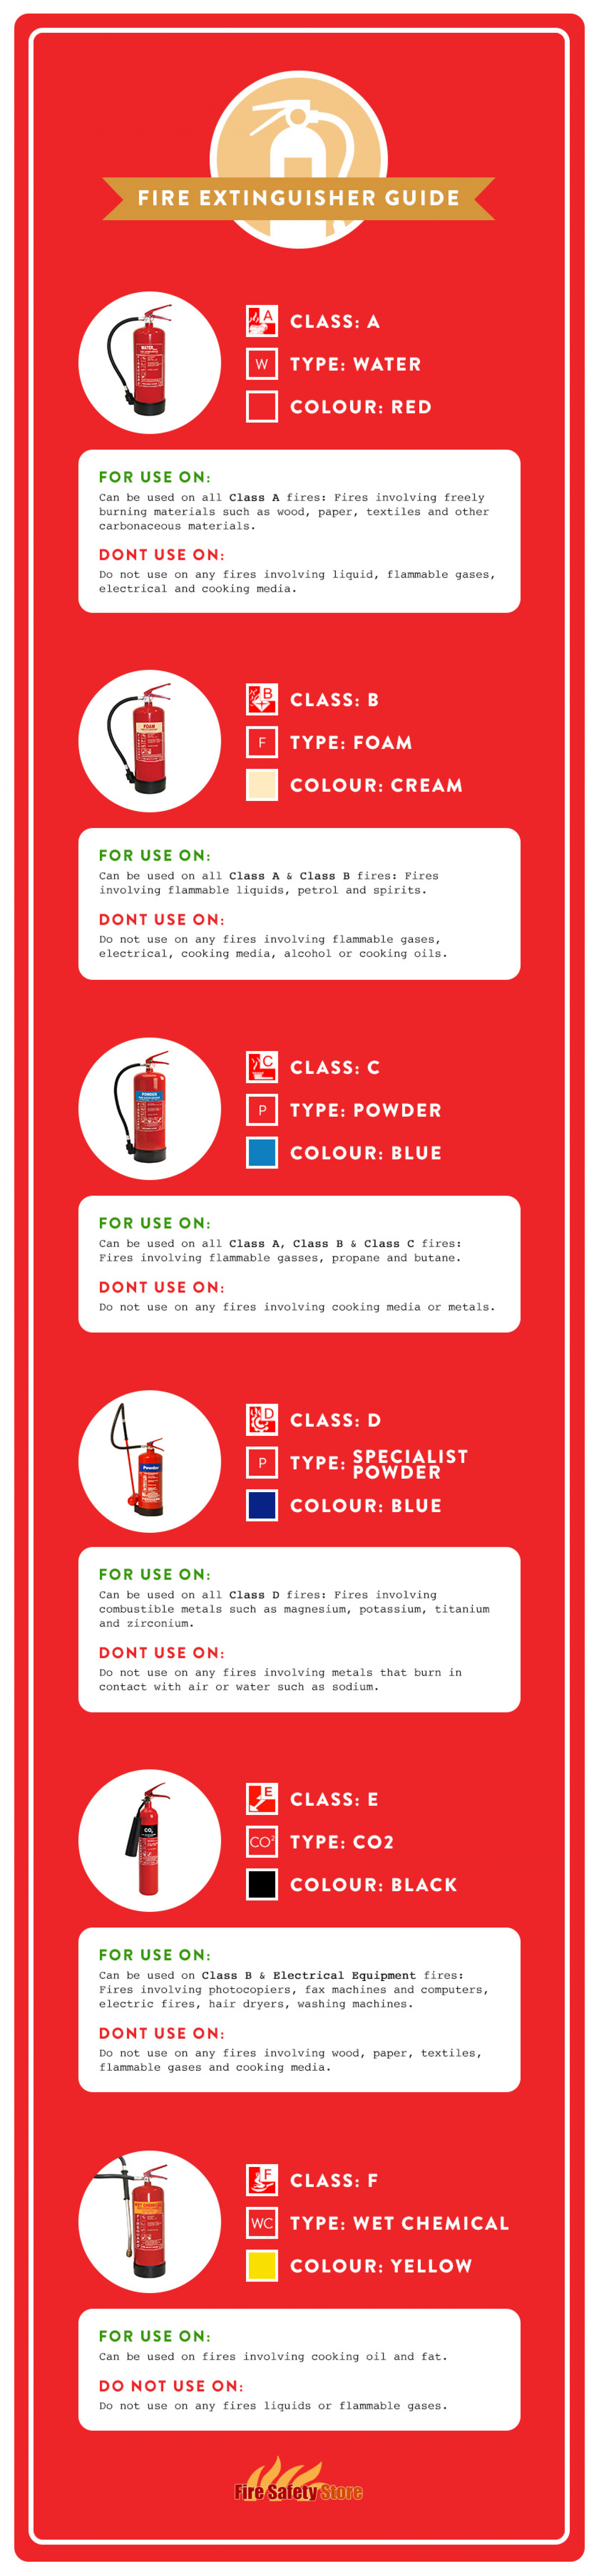 Fire Extinguisher Guide Infographic